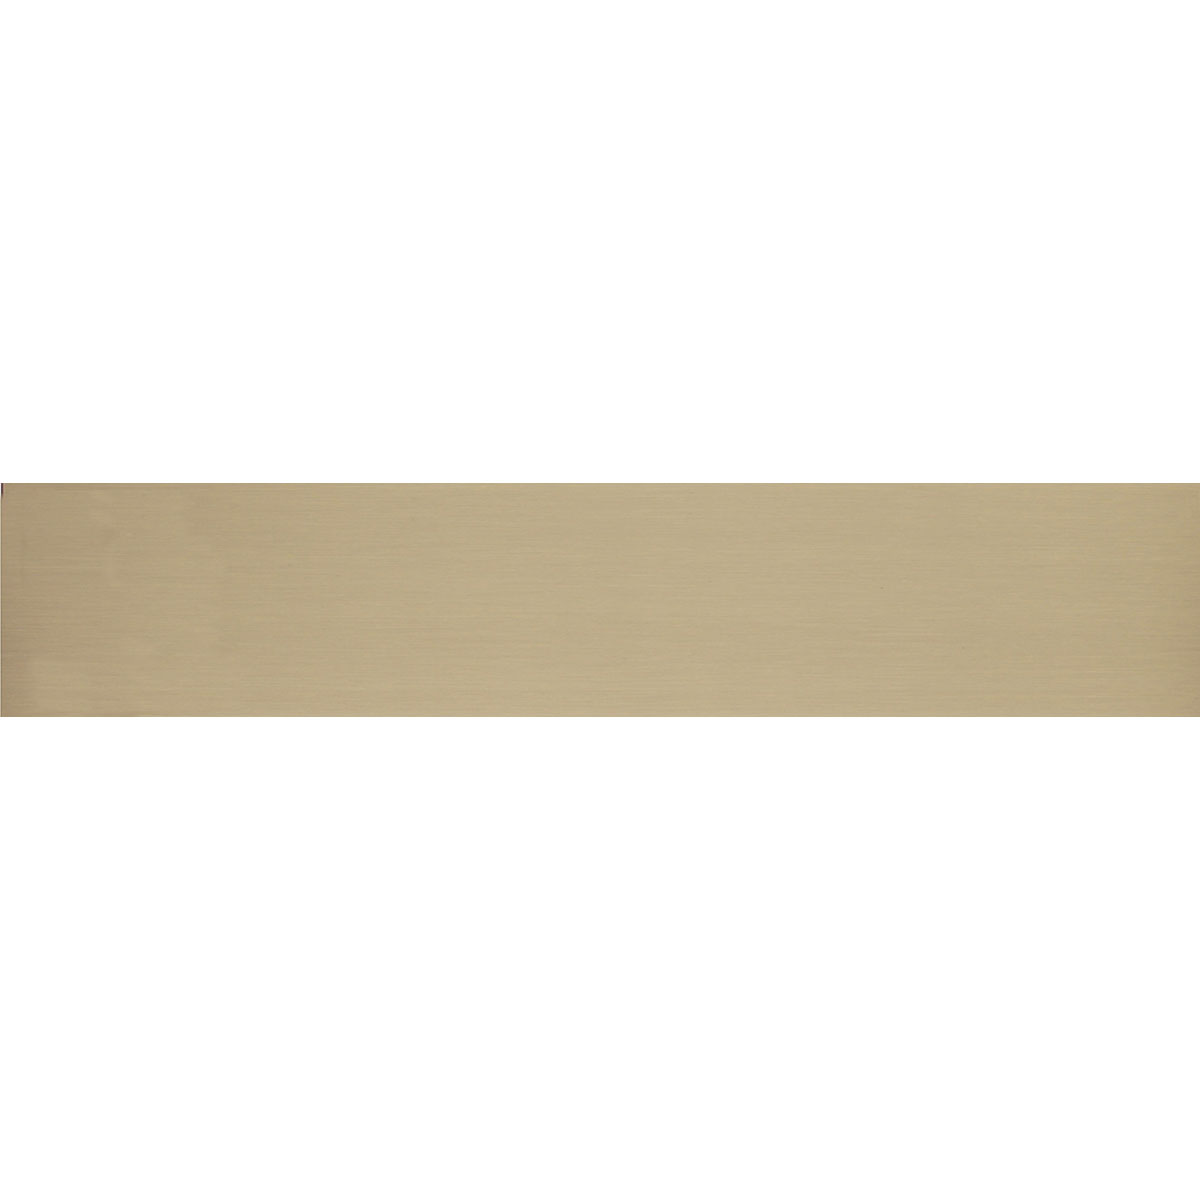 Brass Accents A09 P0634 609mag 34 Inch W X 6 Inch H Kick Pla